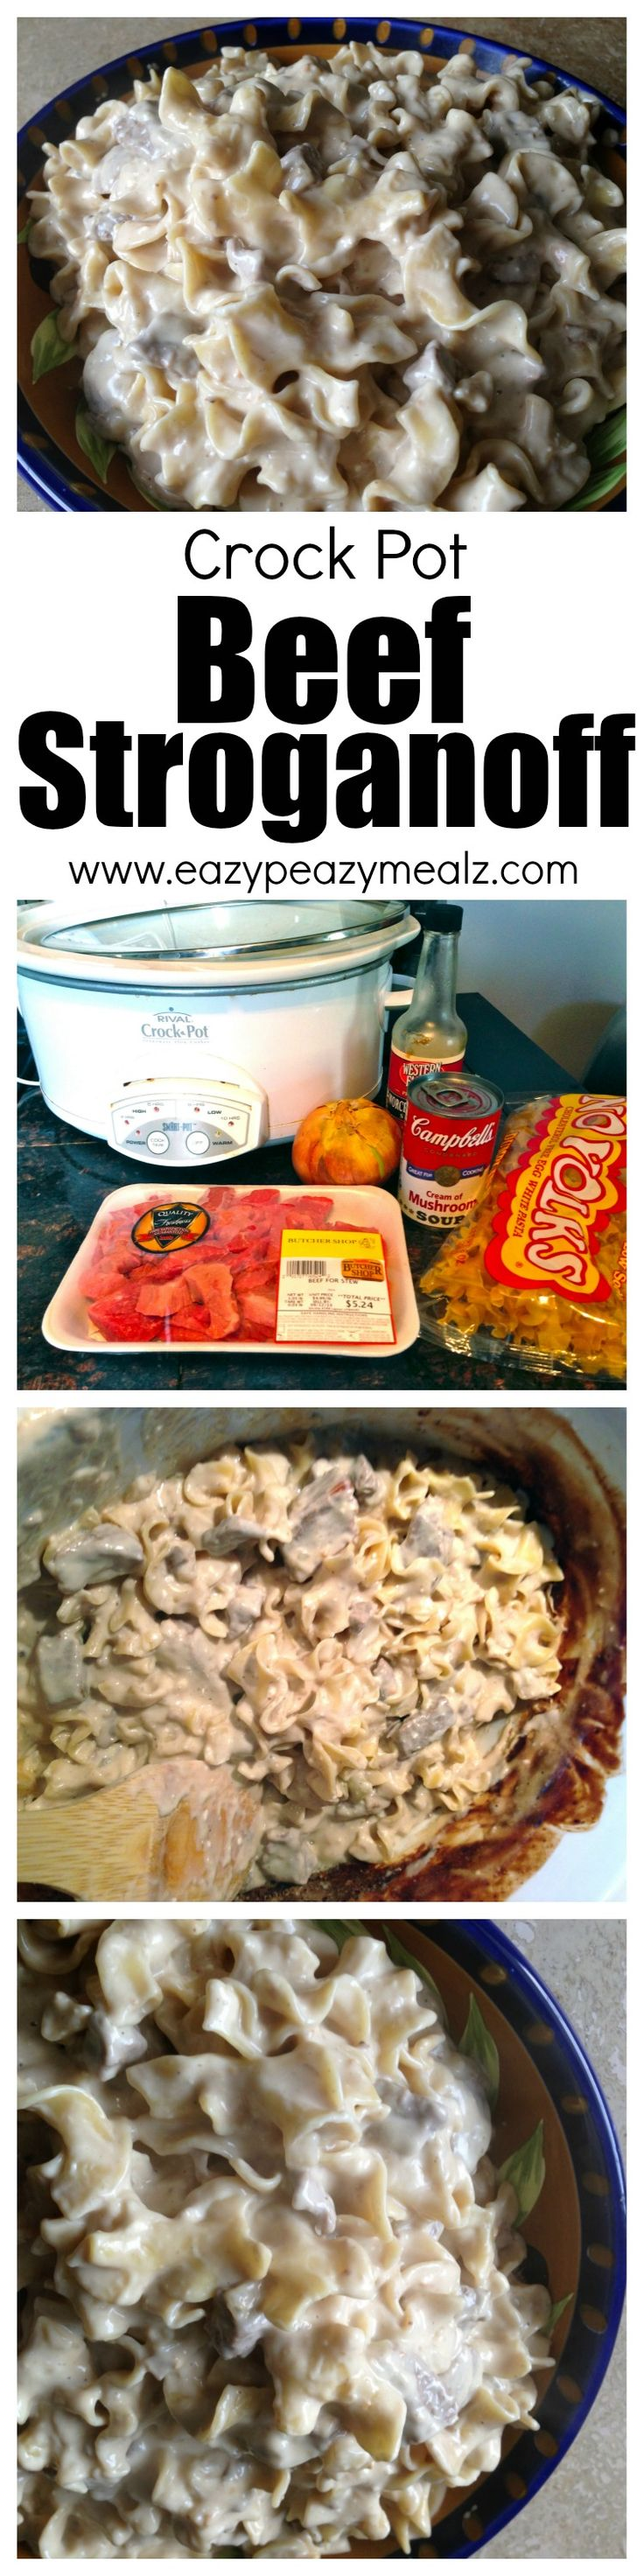 air jordan flight club 80 Fast  easy to make  beef stroganoff  that is family friendly and cooked in the Slow Cooker or Crock Pot  This is one of the most popular recipes on this blog and for good reason    Eazy Peazy Mealz